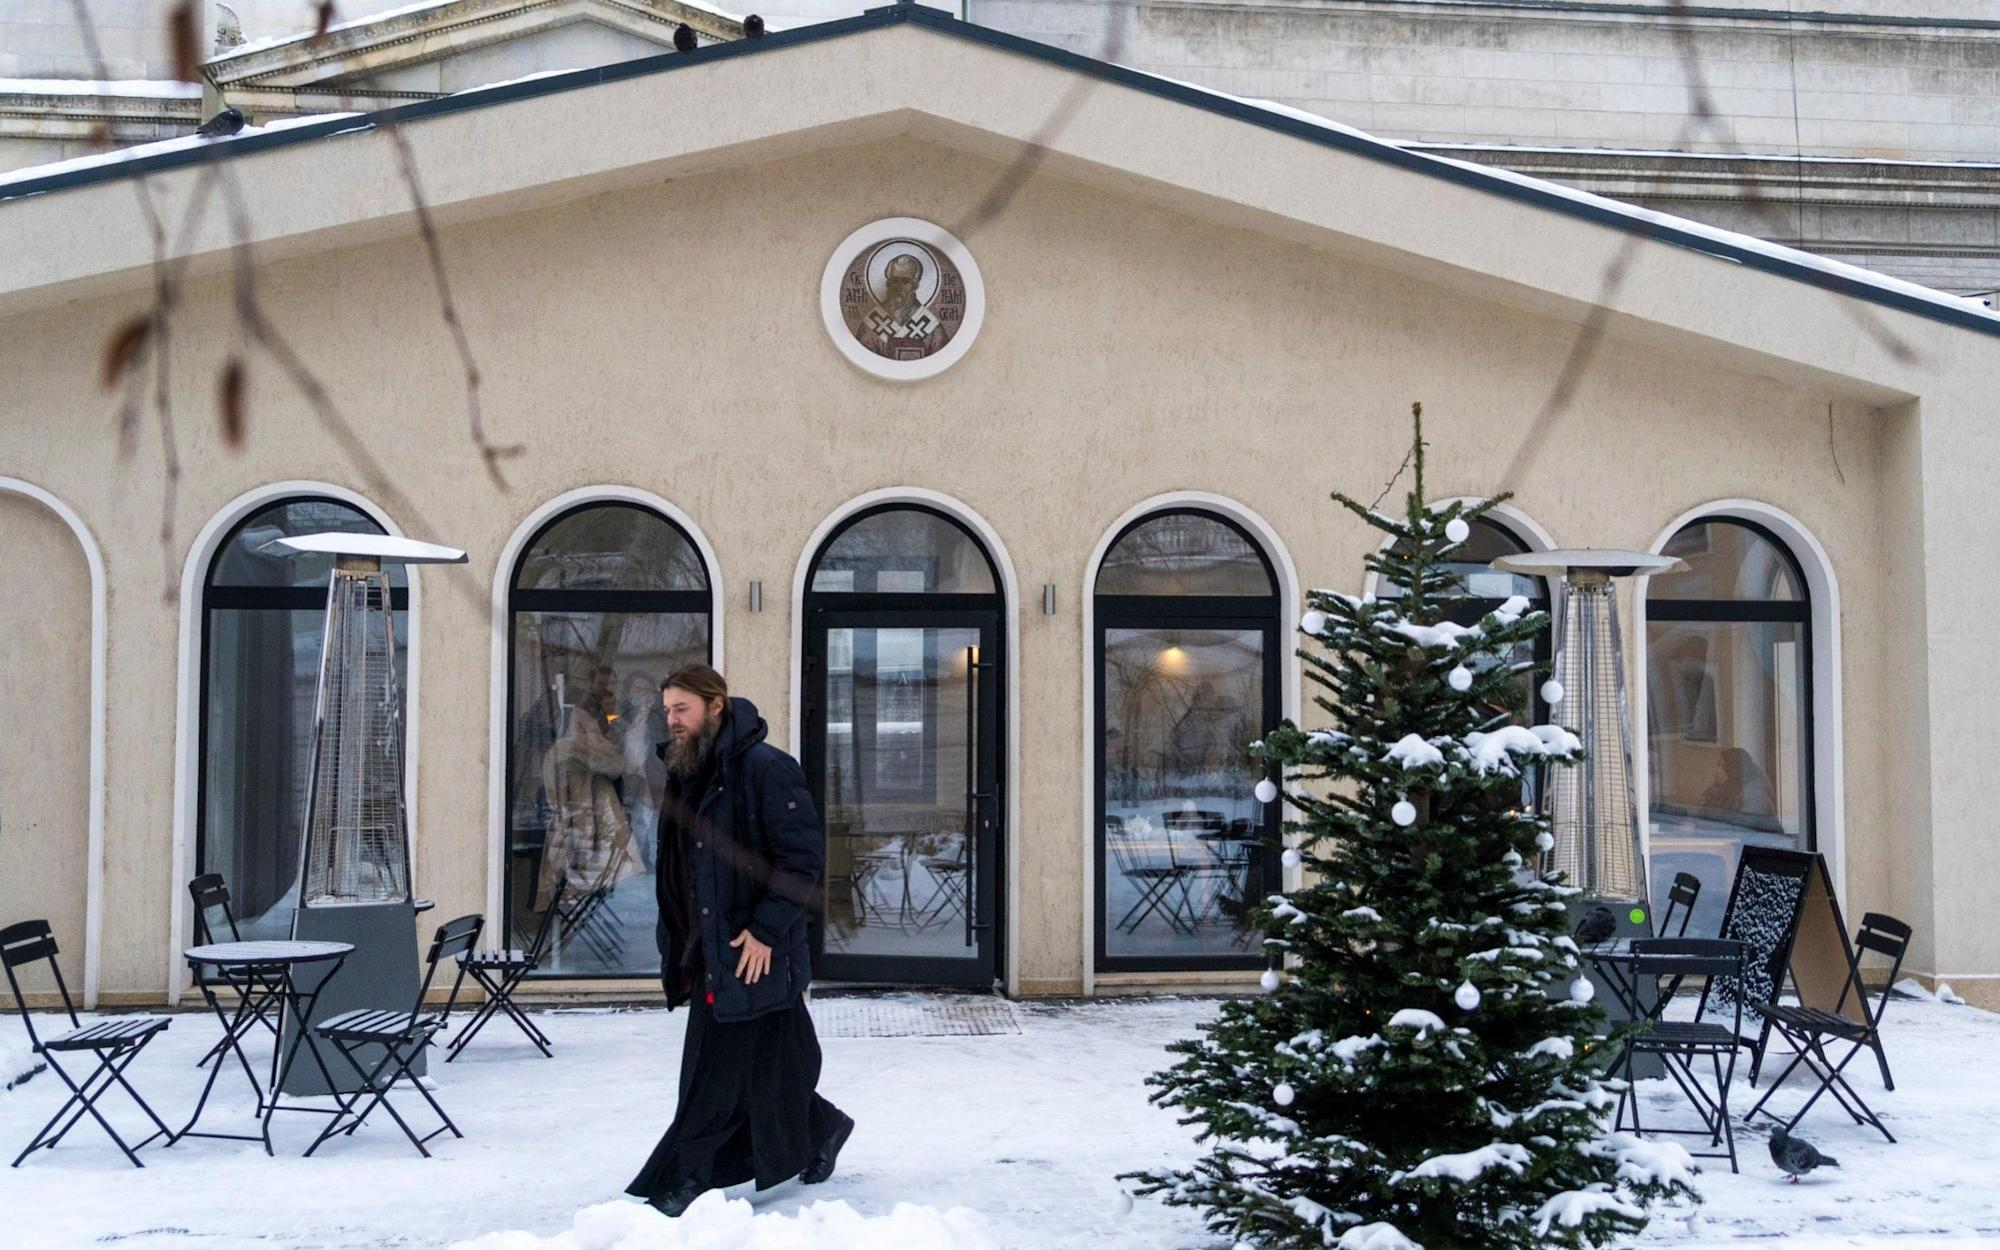 Russian orthodox church makes unorthodox pitch to youth by courting Moscow's hipsters